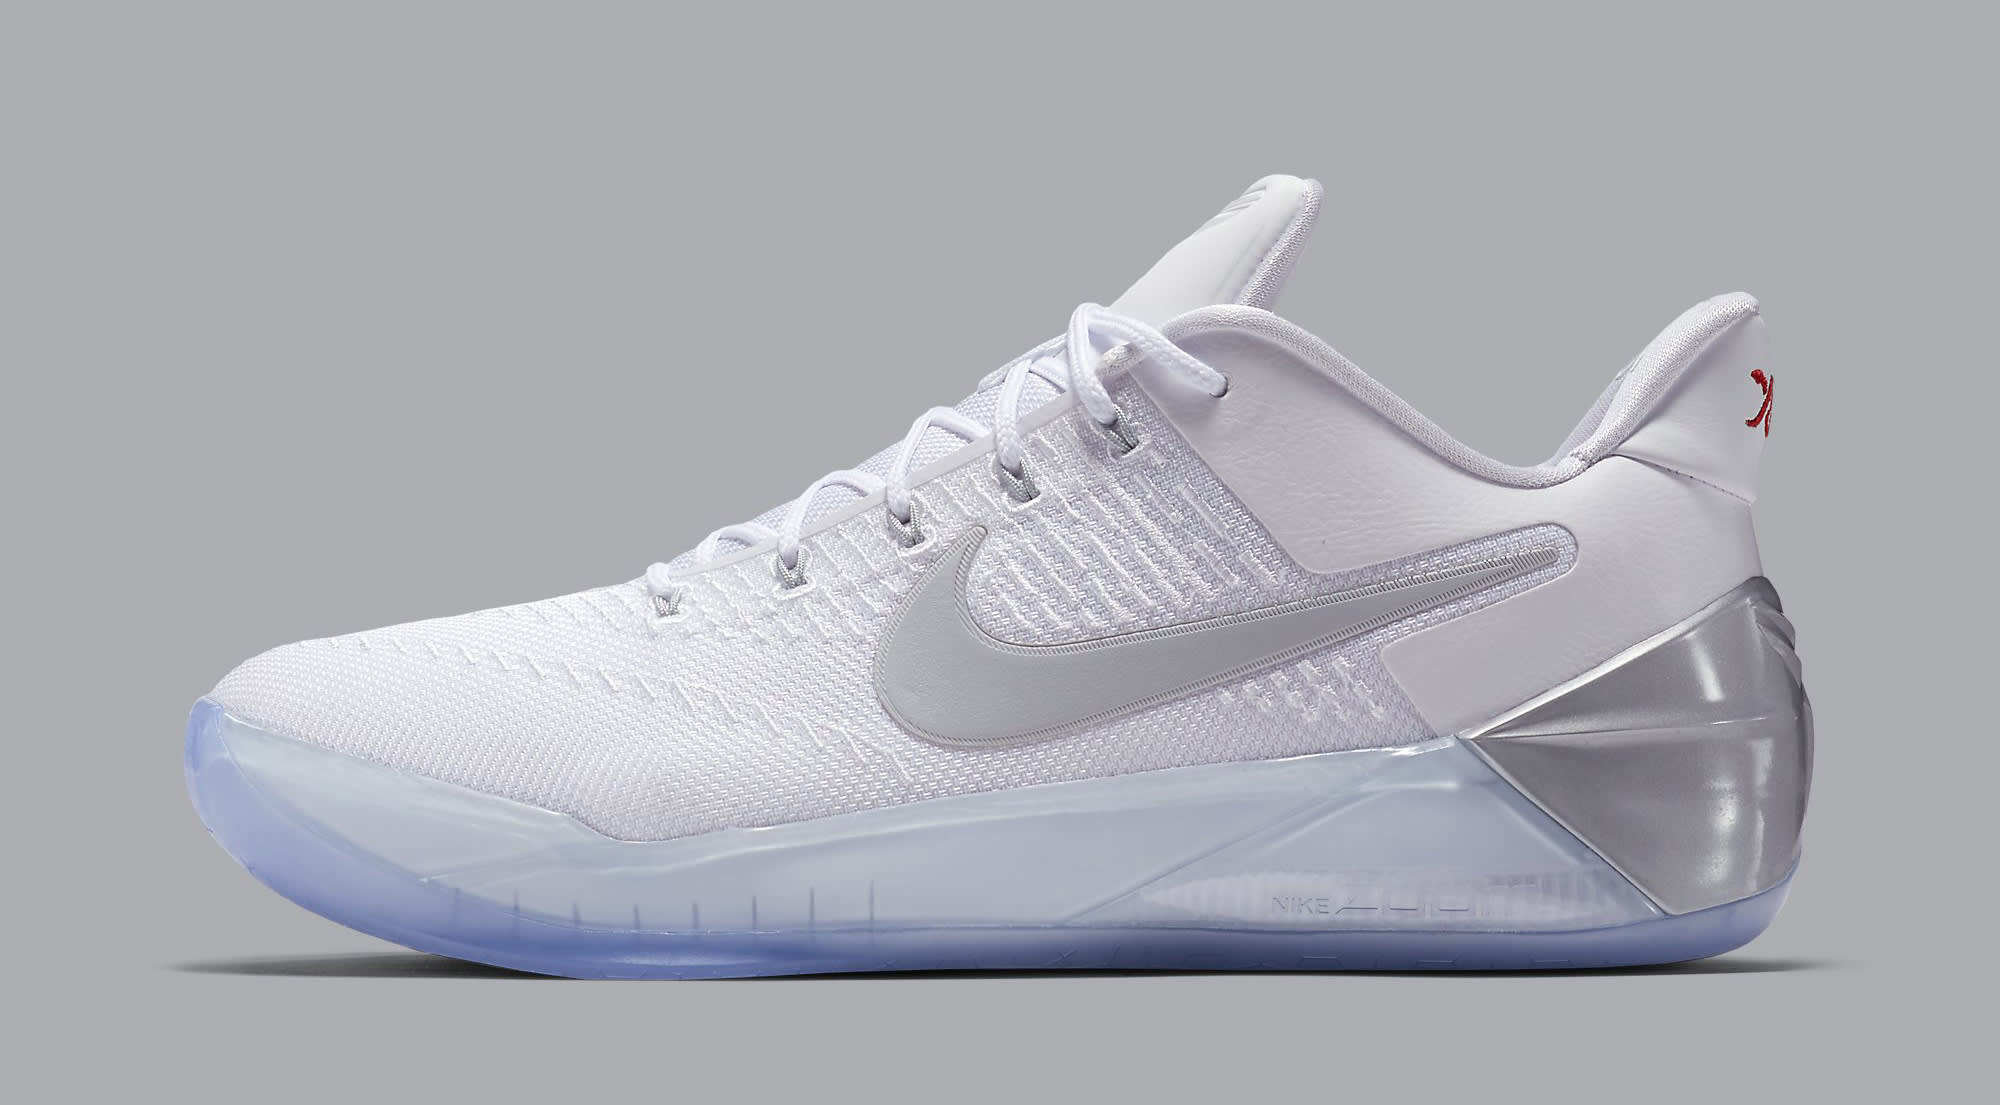 reputable site 25105 492cc Nike Kobe AD White Silver 852427-110 | Sole Collector